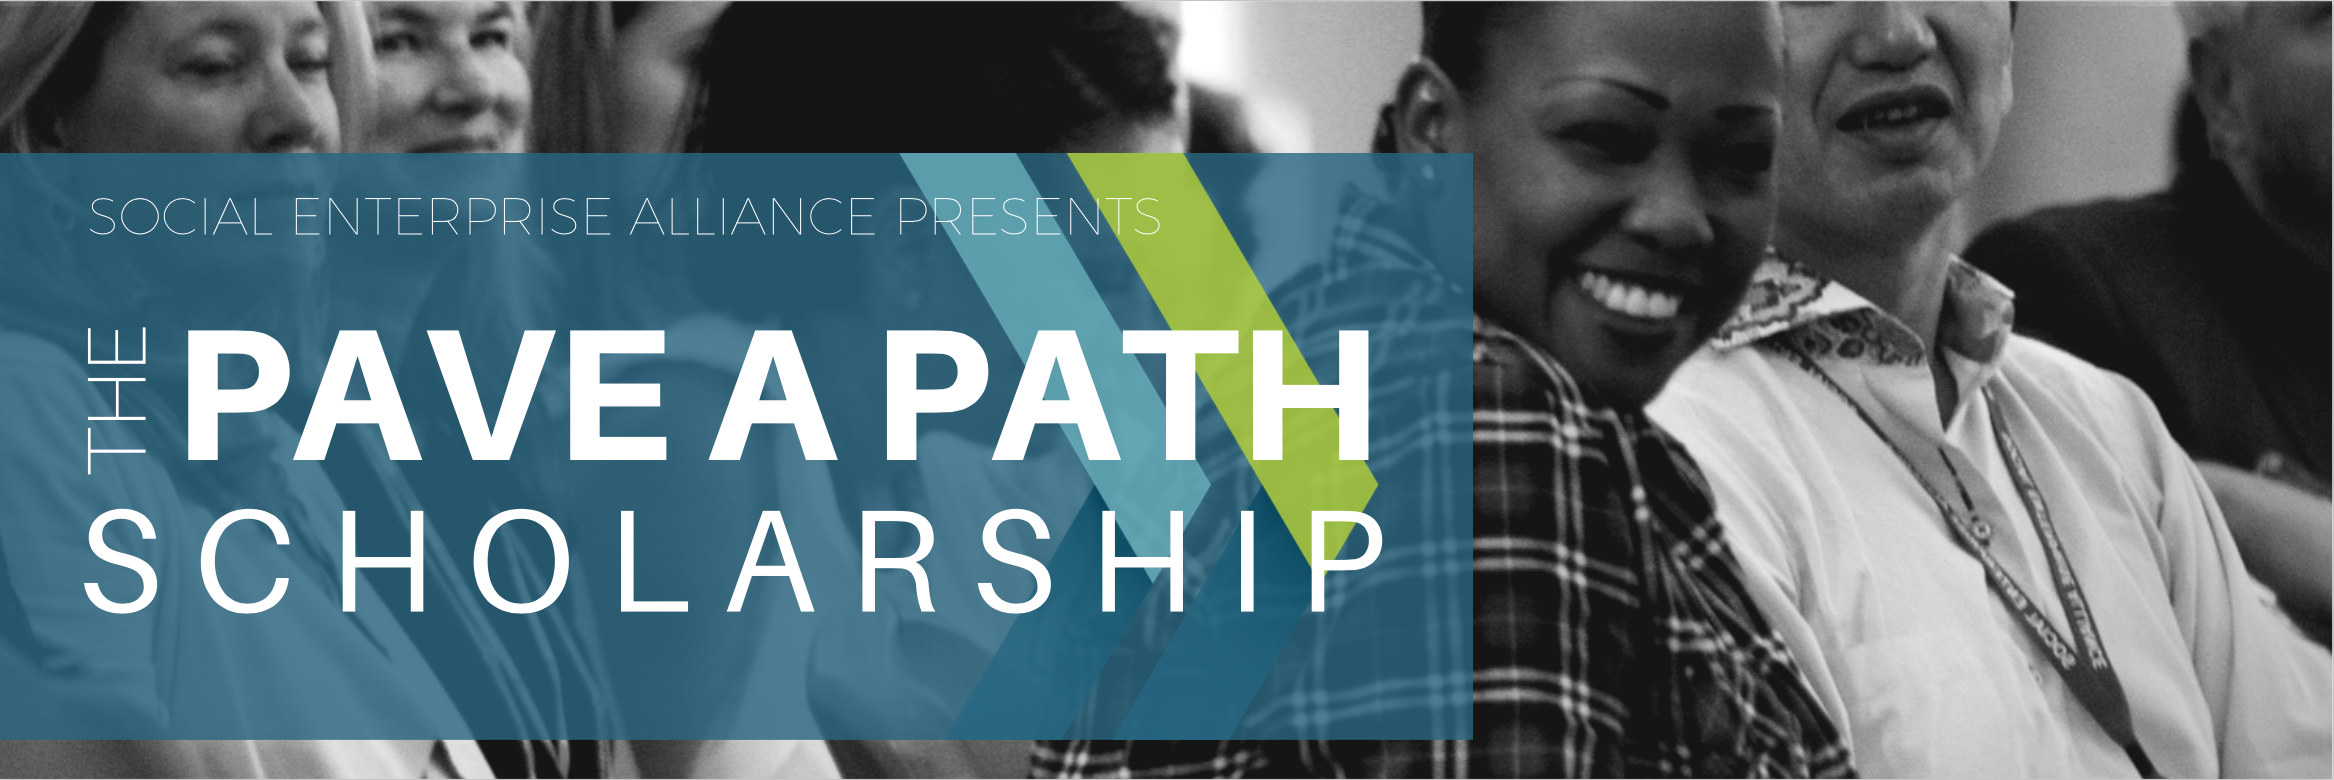 Graphic: Apply for a Pave a Path Scholarship